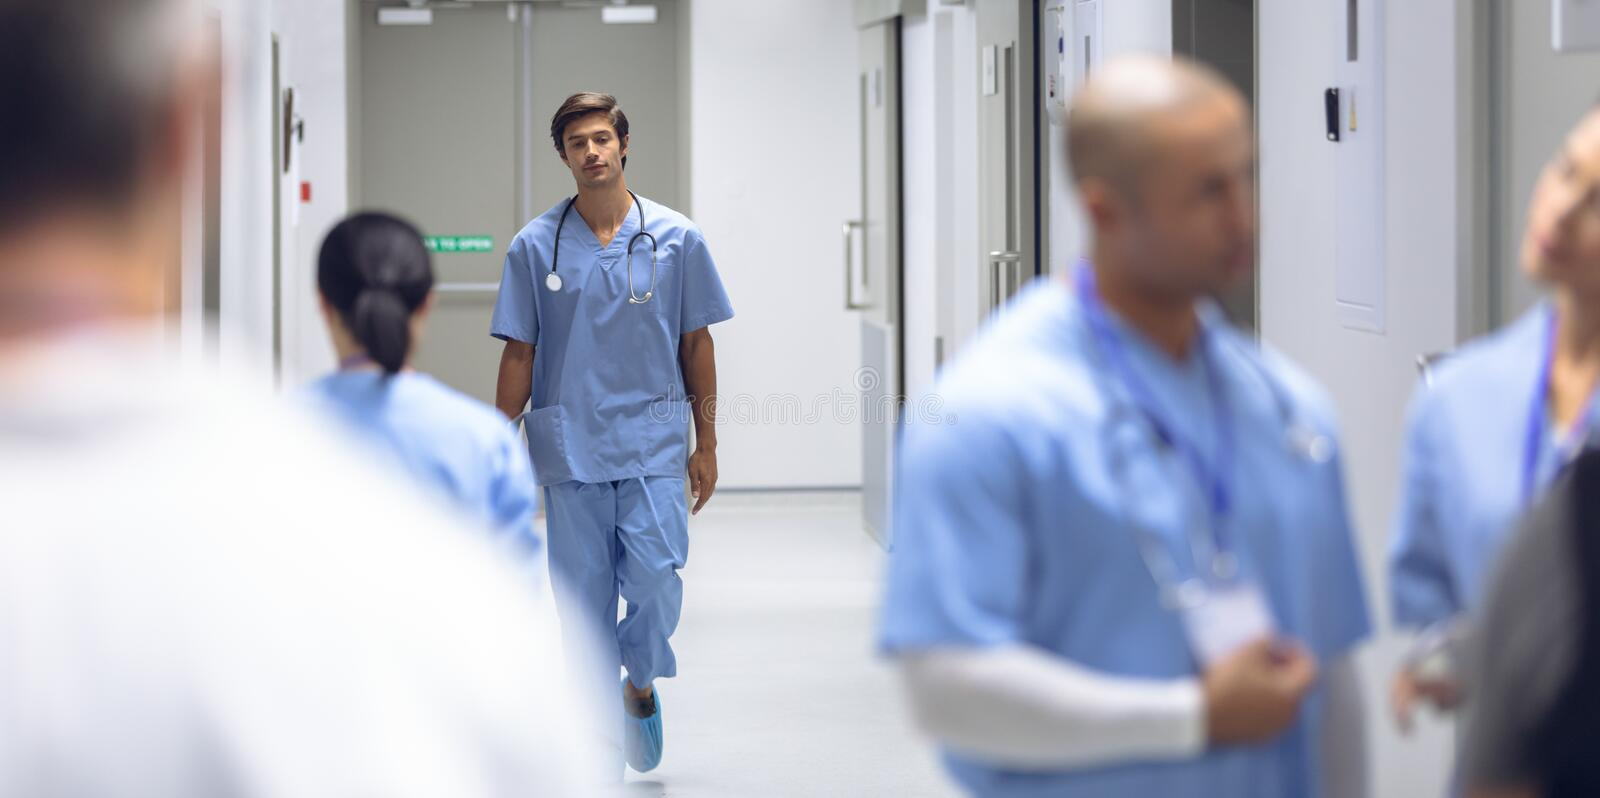 Male surgeon walking in corridor at hospital stock image